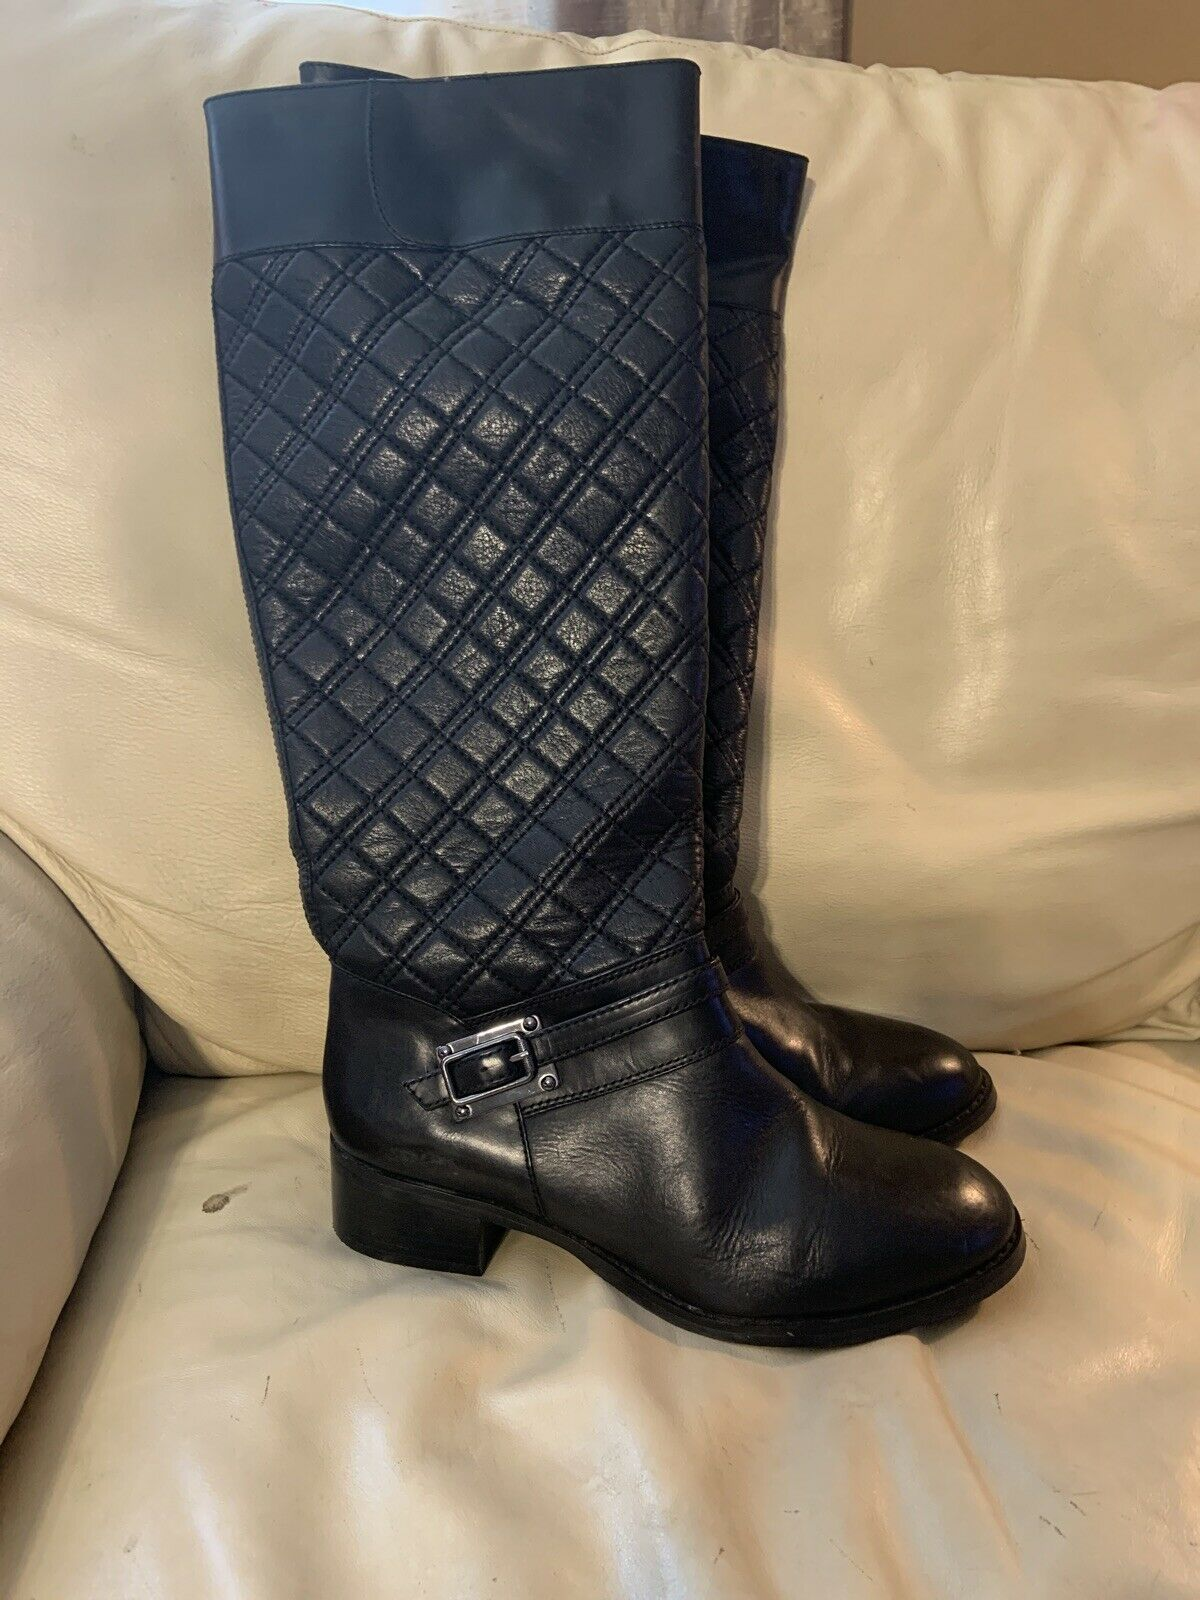 Black Quilted Top Leather Boot By Alex Marie Size 8.5 M